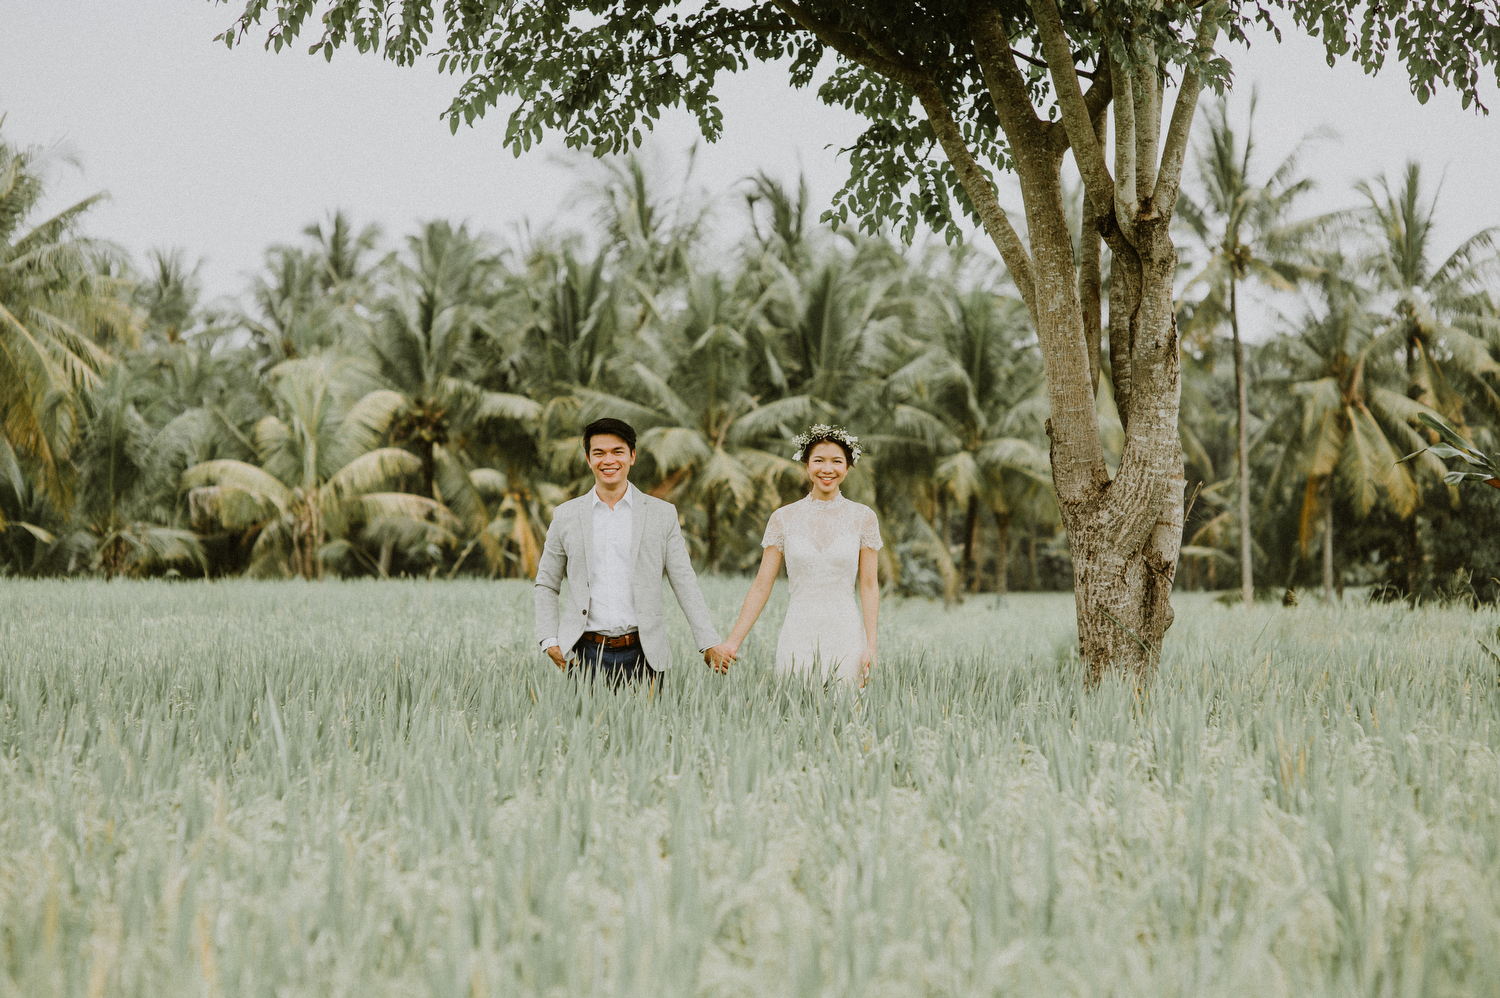 preweddinginbali-bali-batur-ubud-diktatphotography-engagemnet-baliweddingphotographer-weddinginbali-31